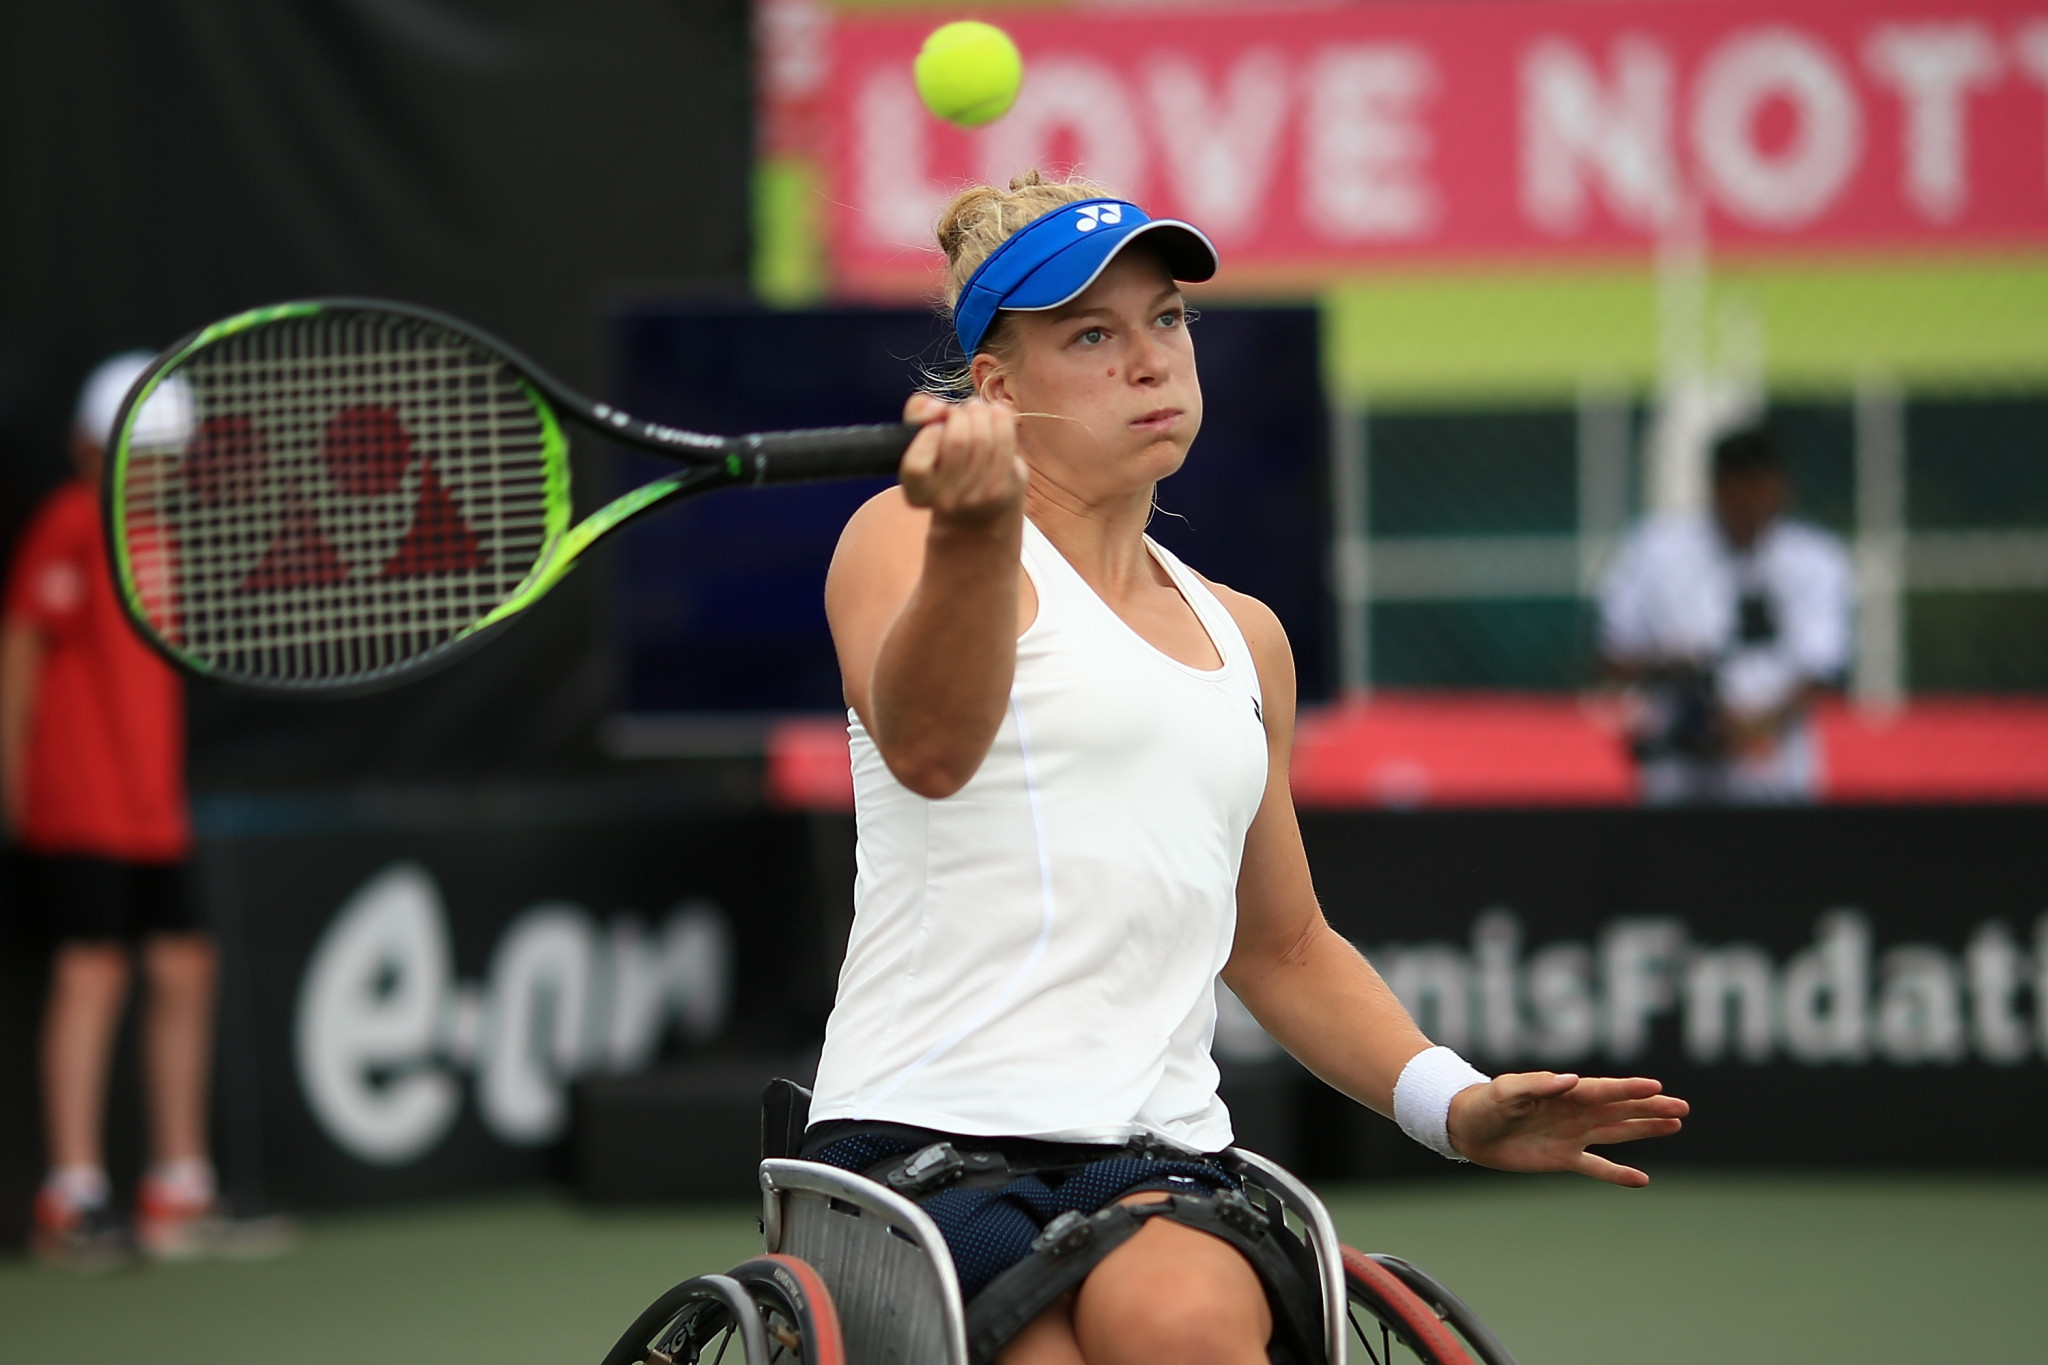 Two wheelchair tennis players make shortlist for July's Allianz Athlete of the Month